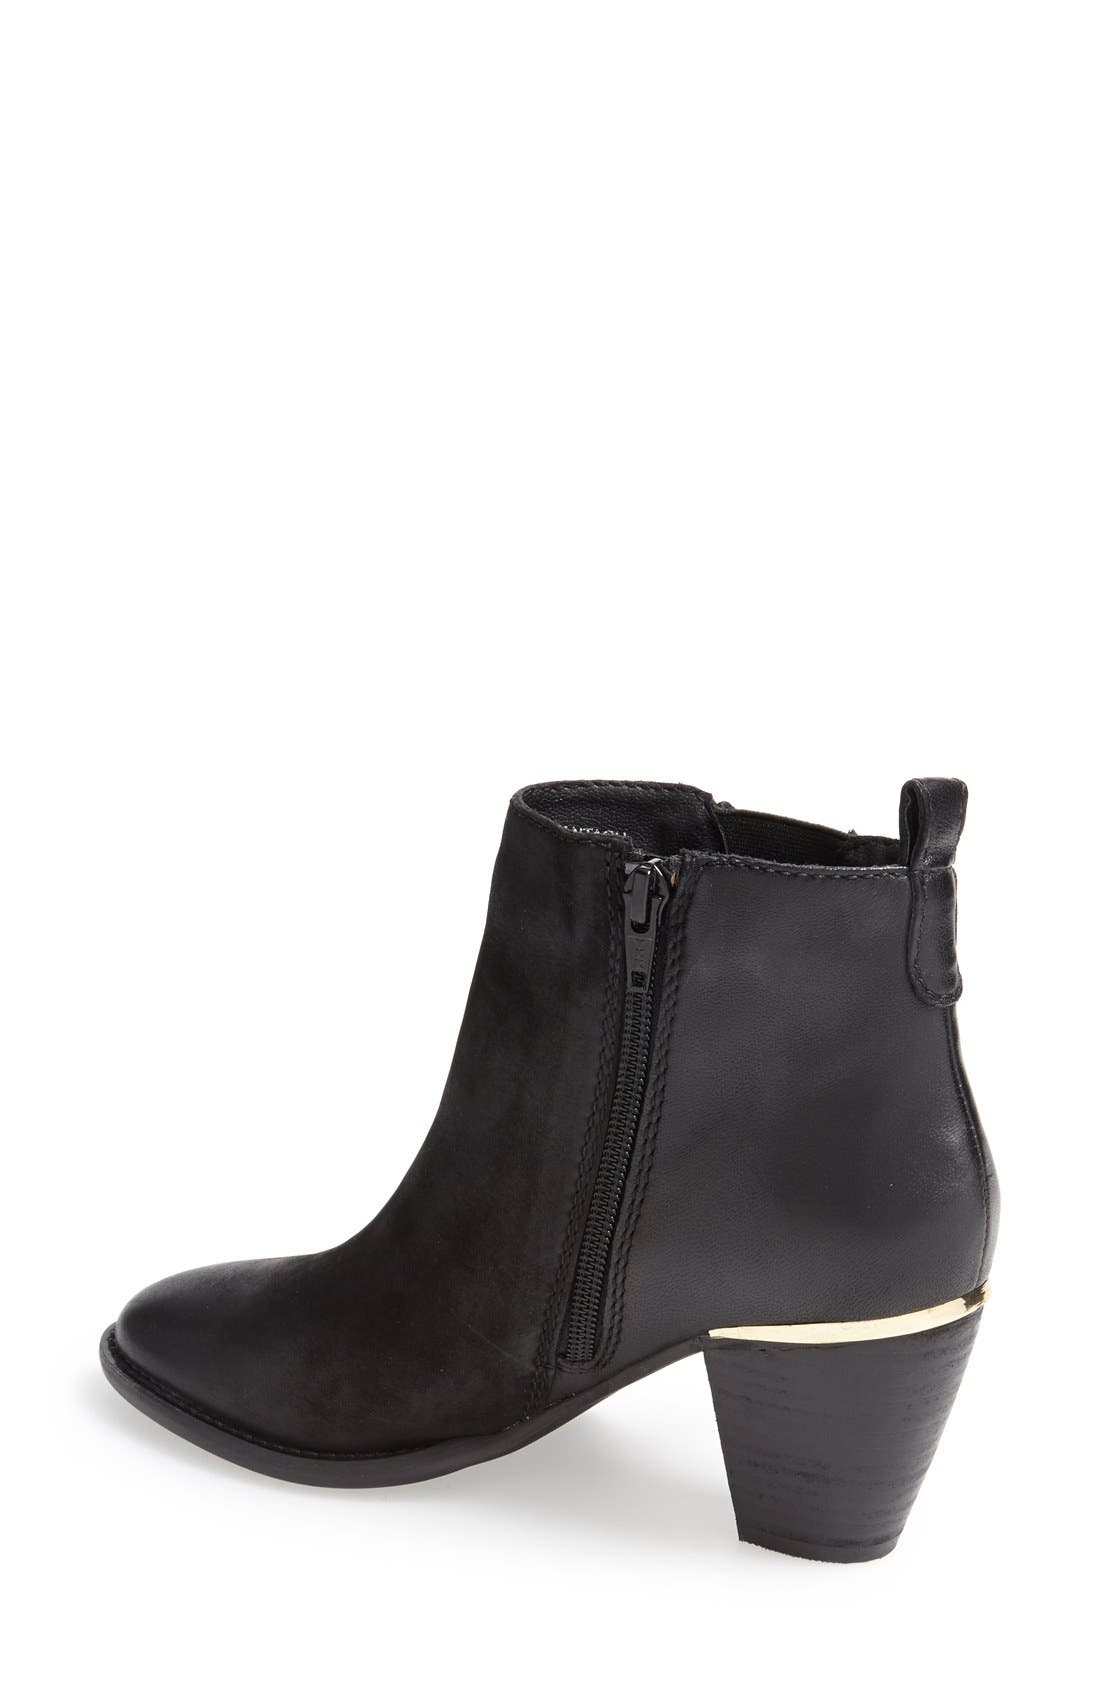 'Wantagh' Leather Ankle Boot,                             Alternate thumbnail 3, color,                             001